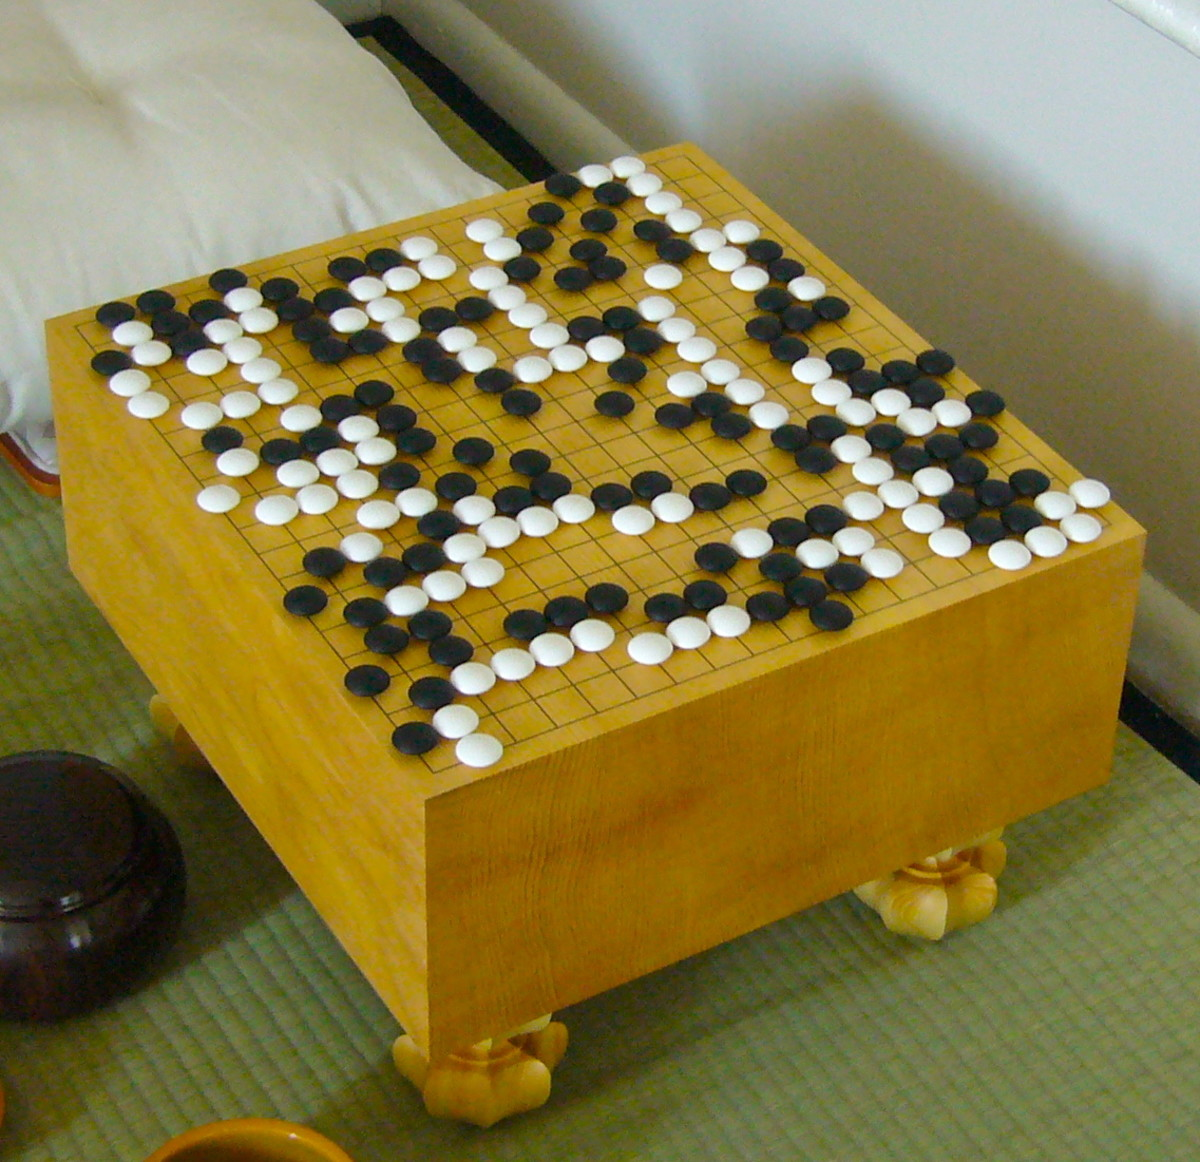 A game of Go in progress.